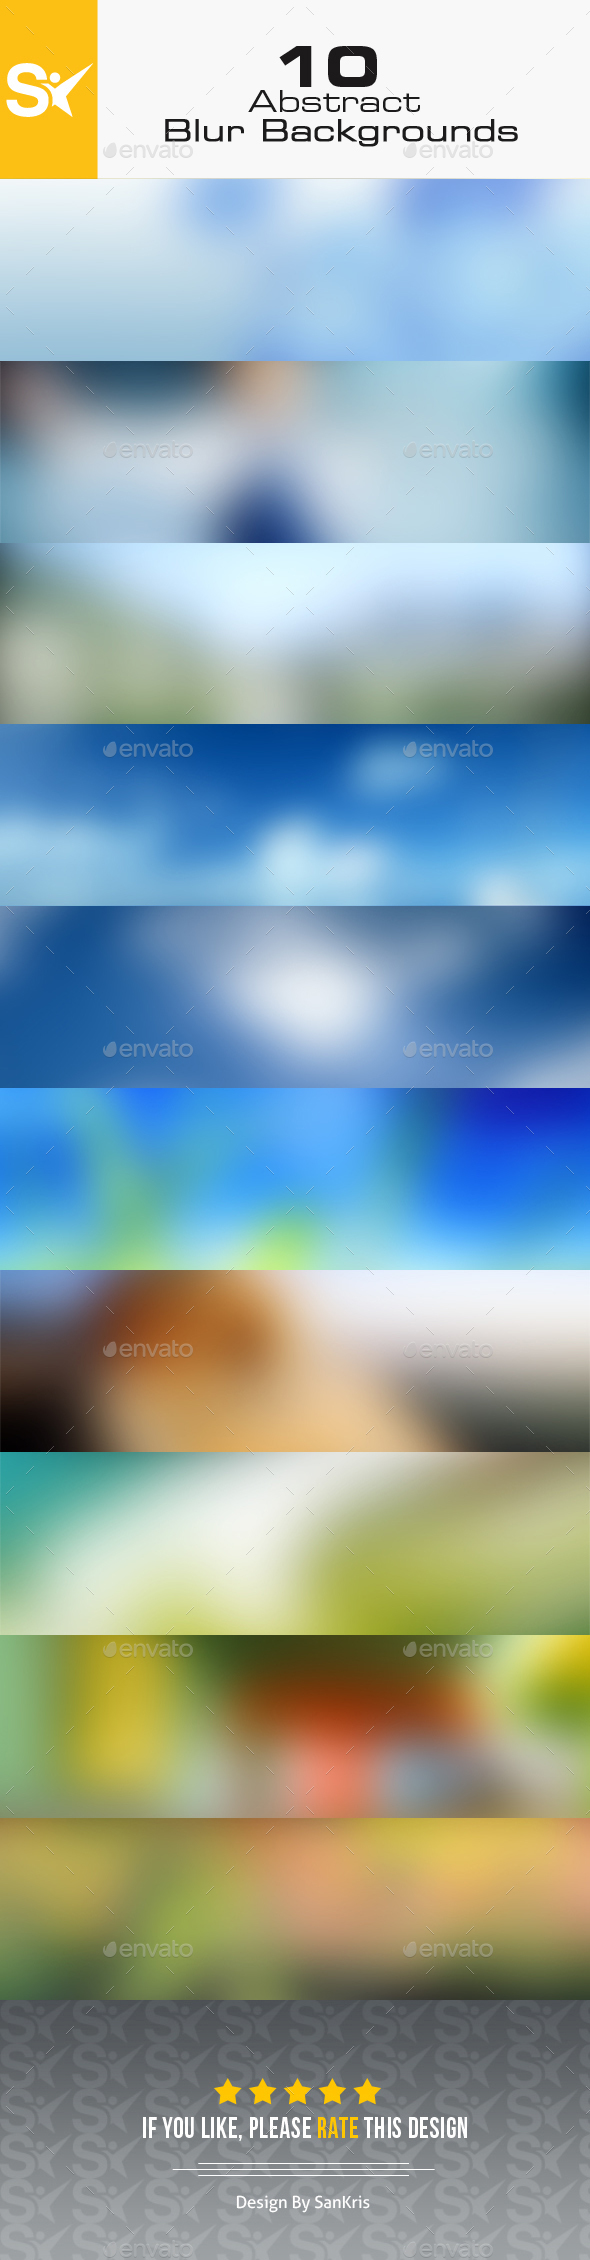 10 Blur Backgrounds Vol.2 - Abstract Backgrounds